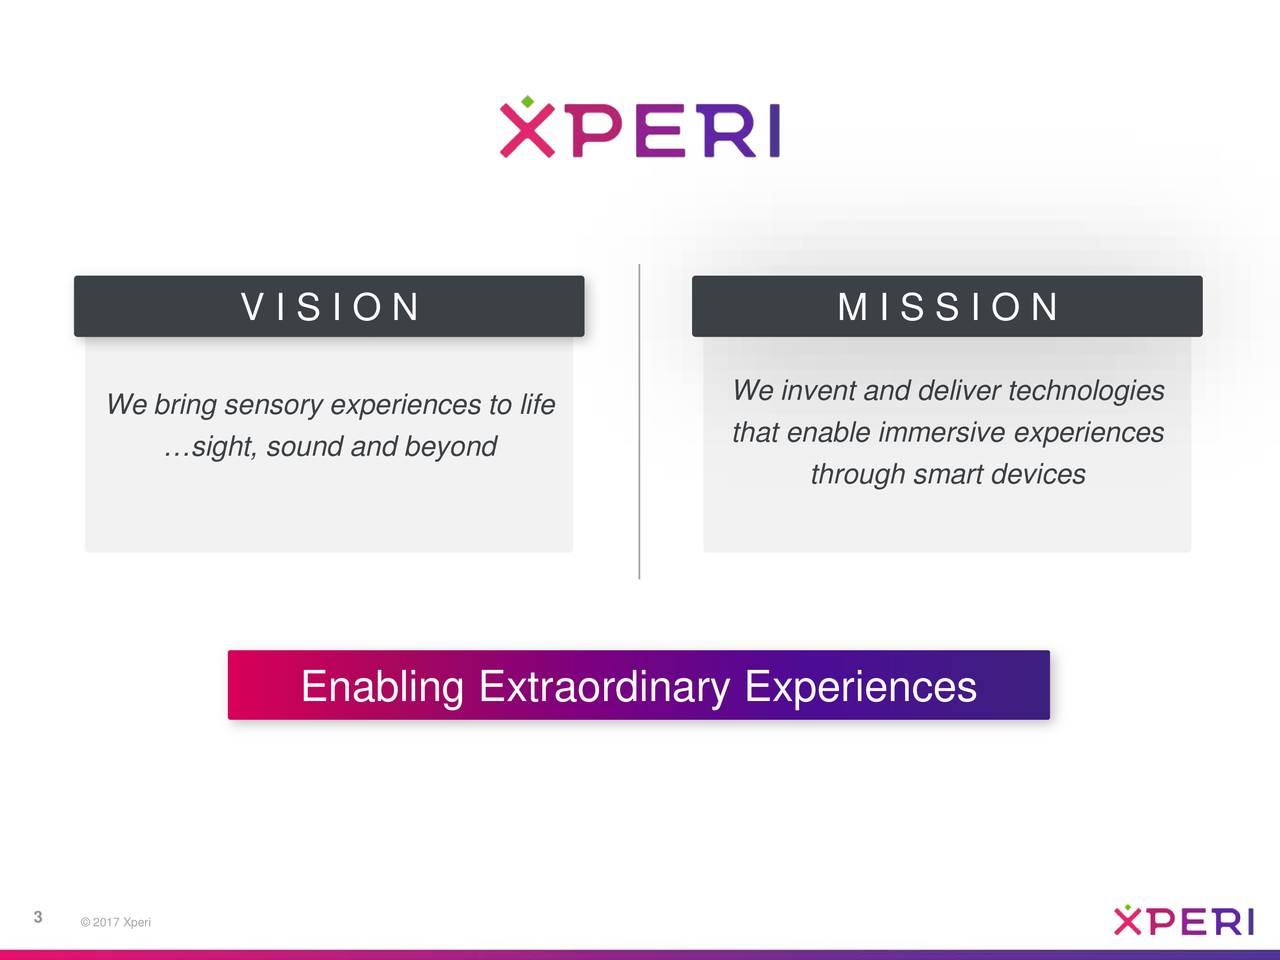 We invent and deliver technologies We bring sensory experiences to life …sight, sound and beyond that enable immersive experiences through smart devices Enabling Extraordinary Experiences 3 © 2017 Xperi